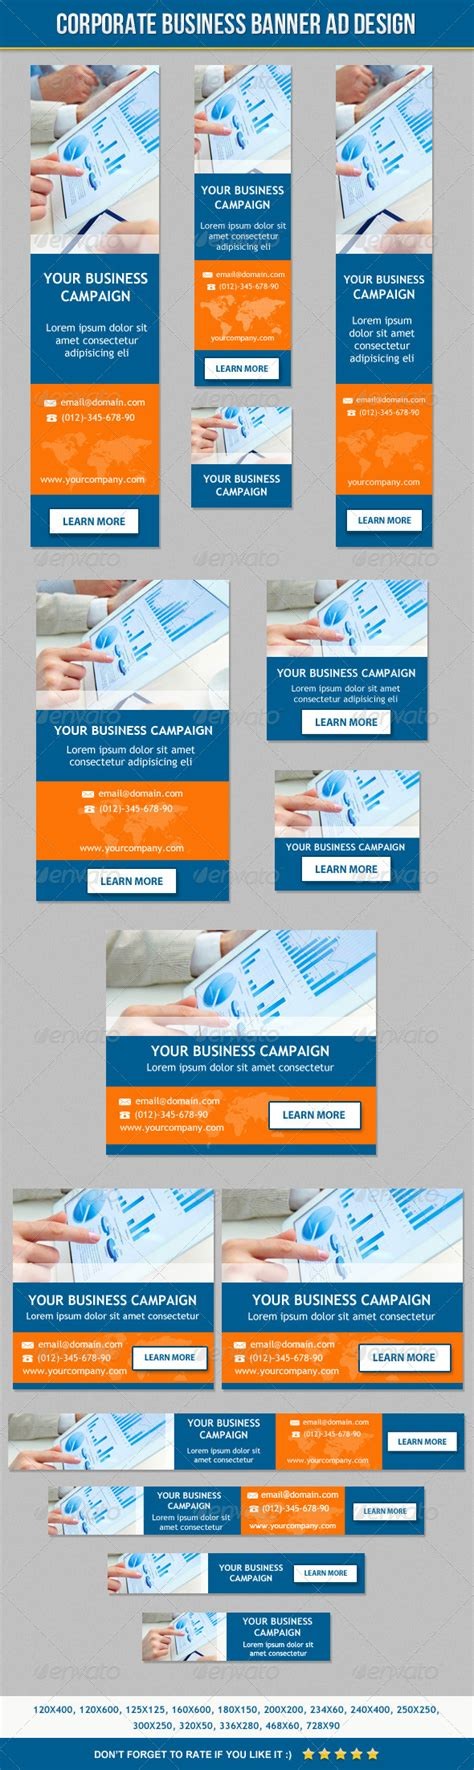 design online banner ads corporate business banner ad design by themeboo graphicriver